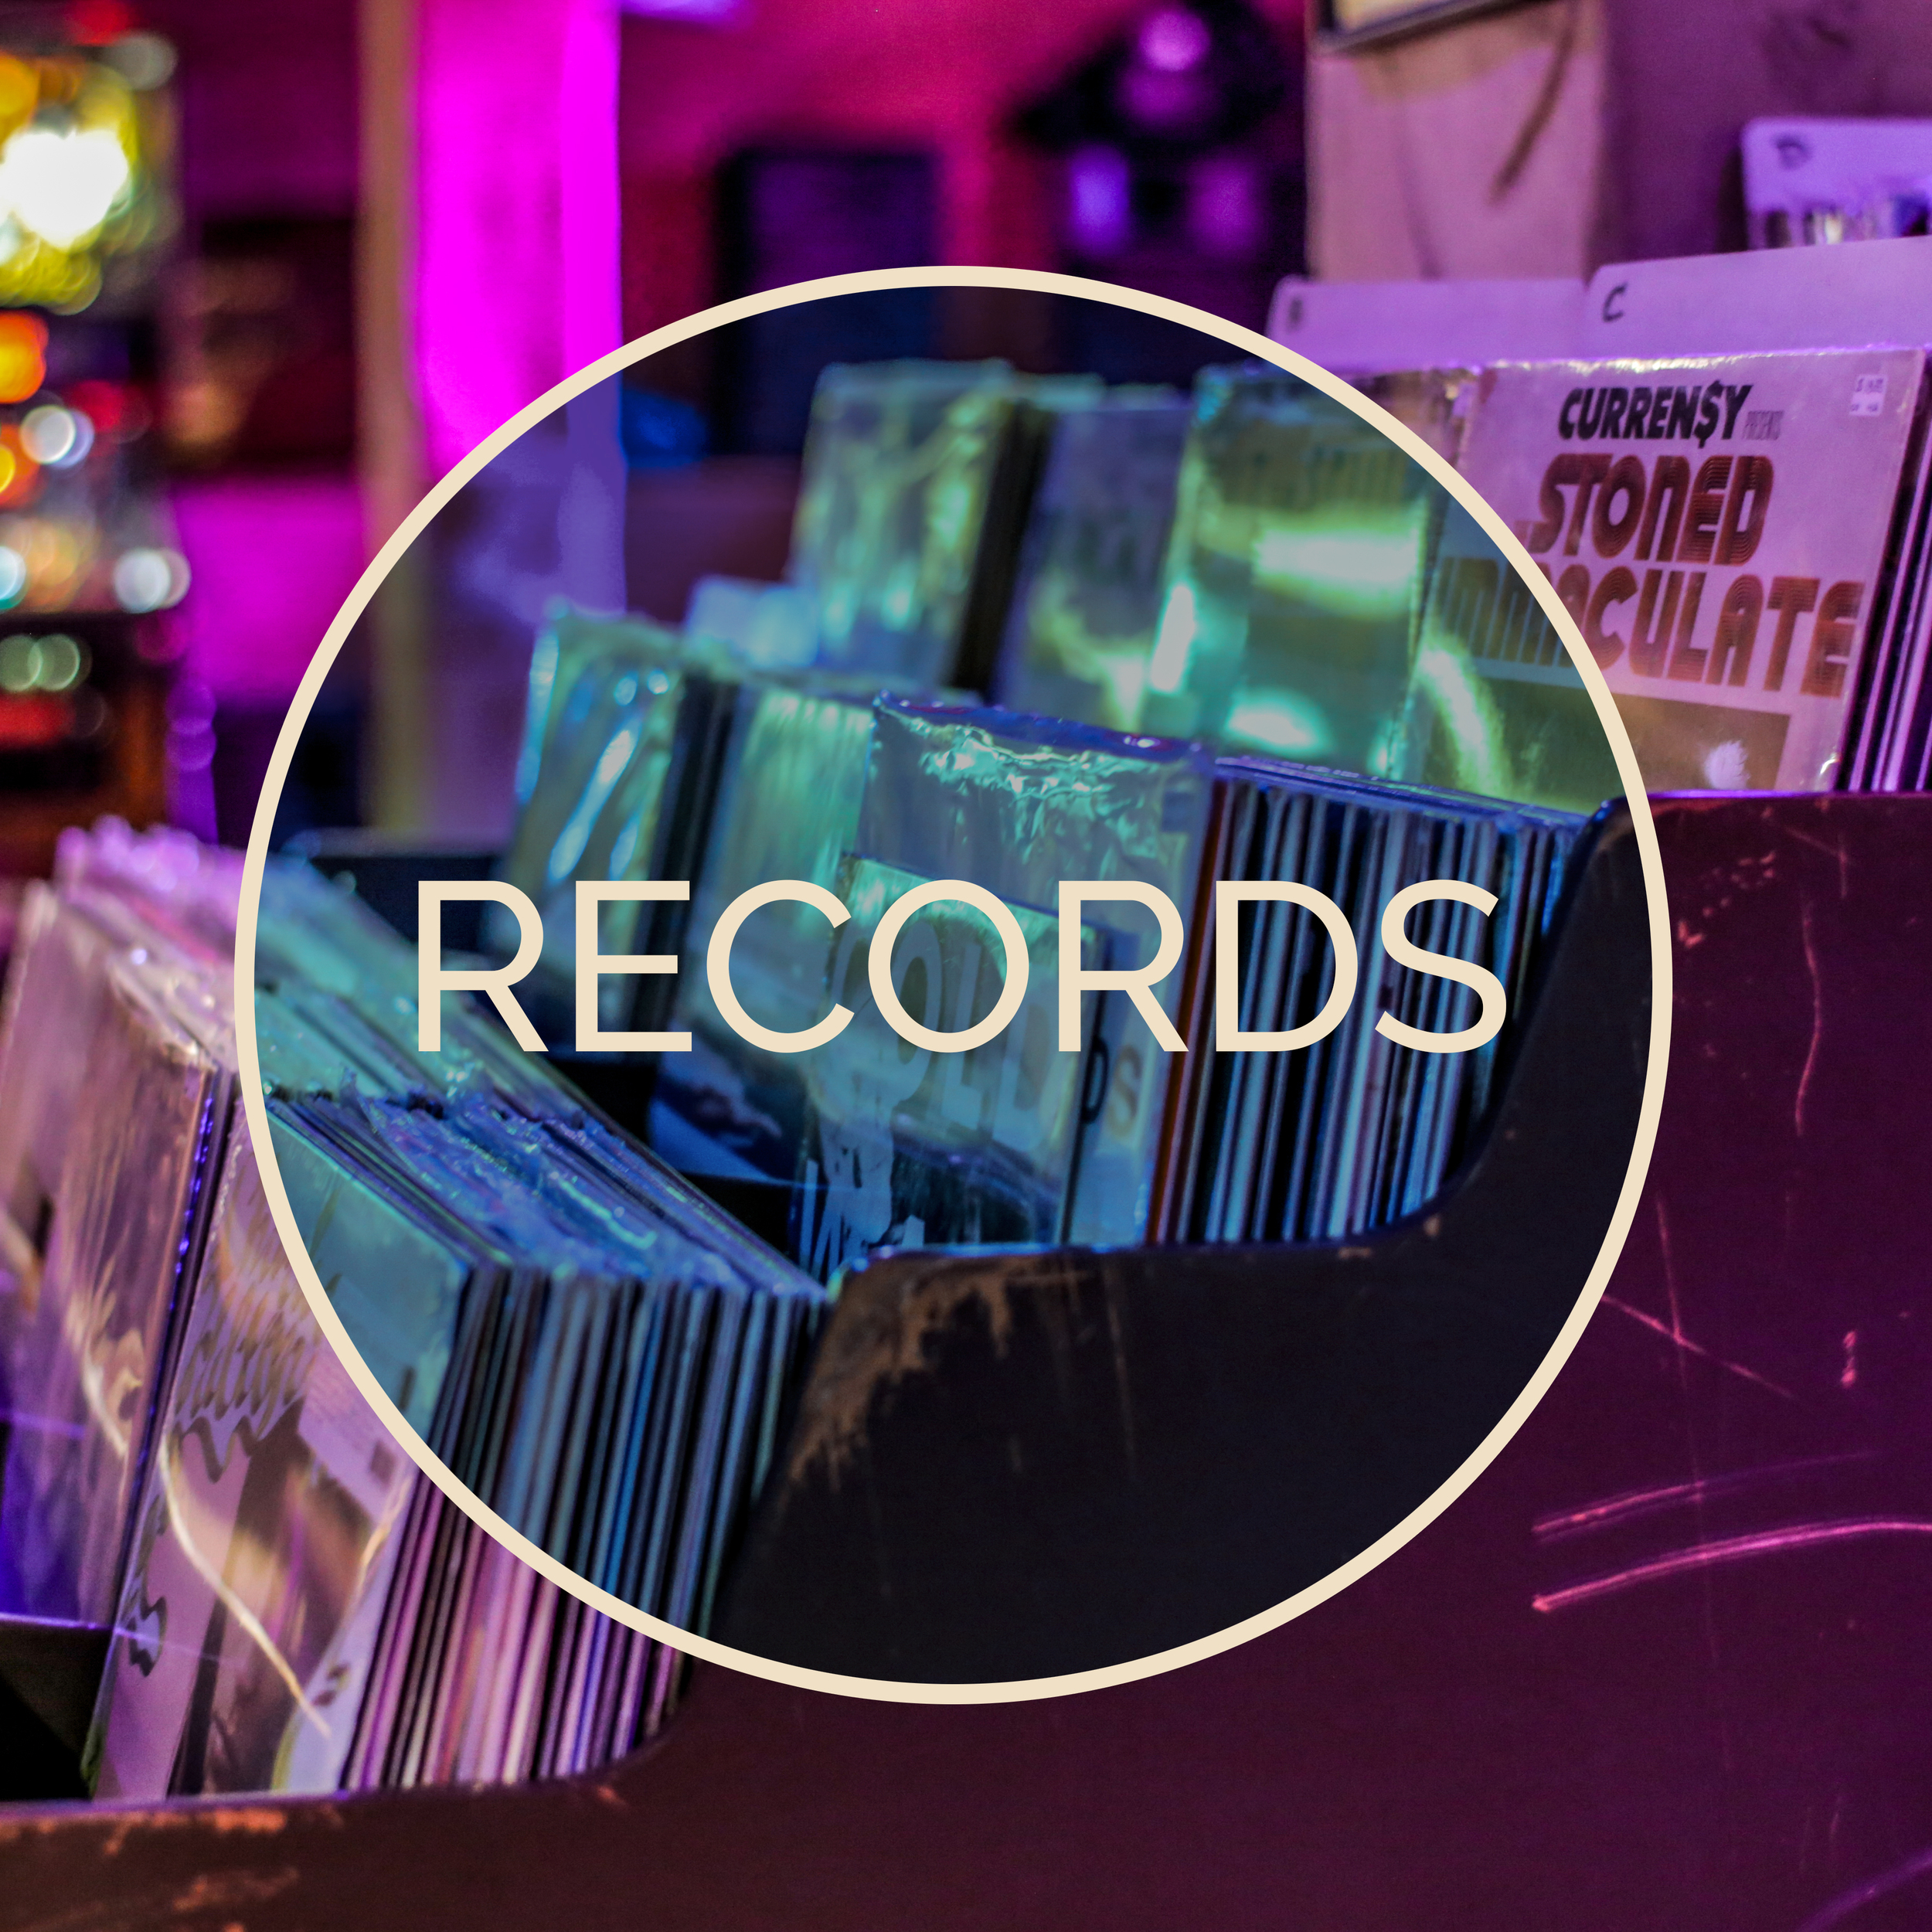 Check out our in-house record store